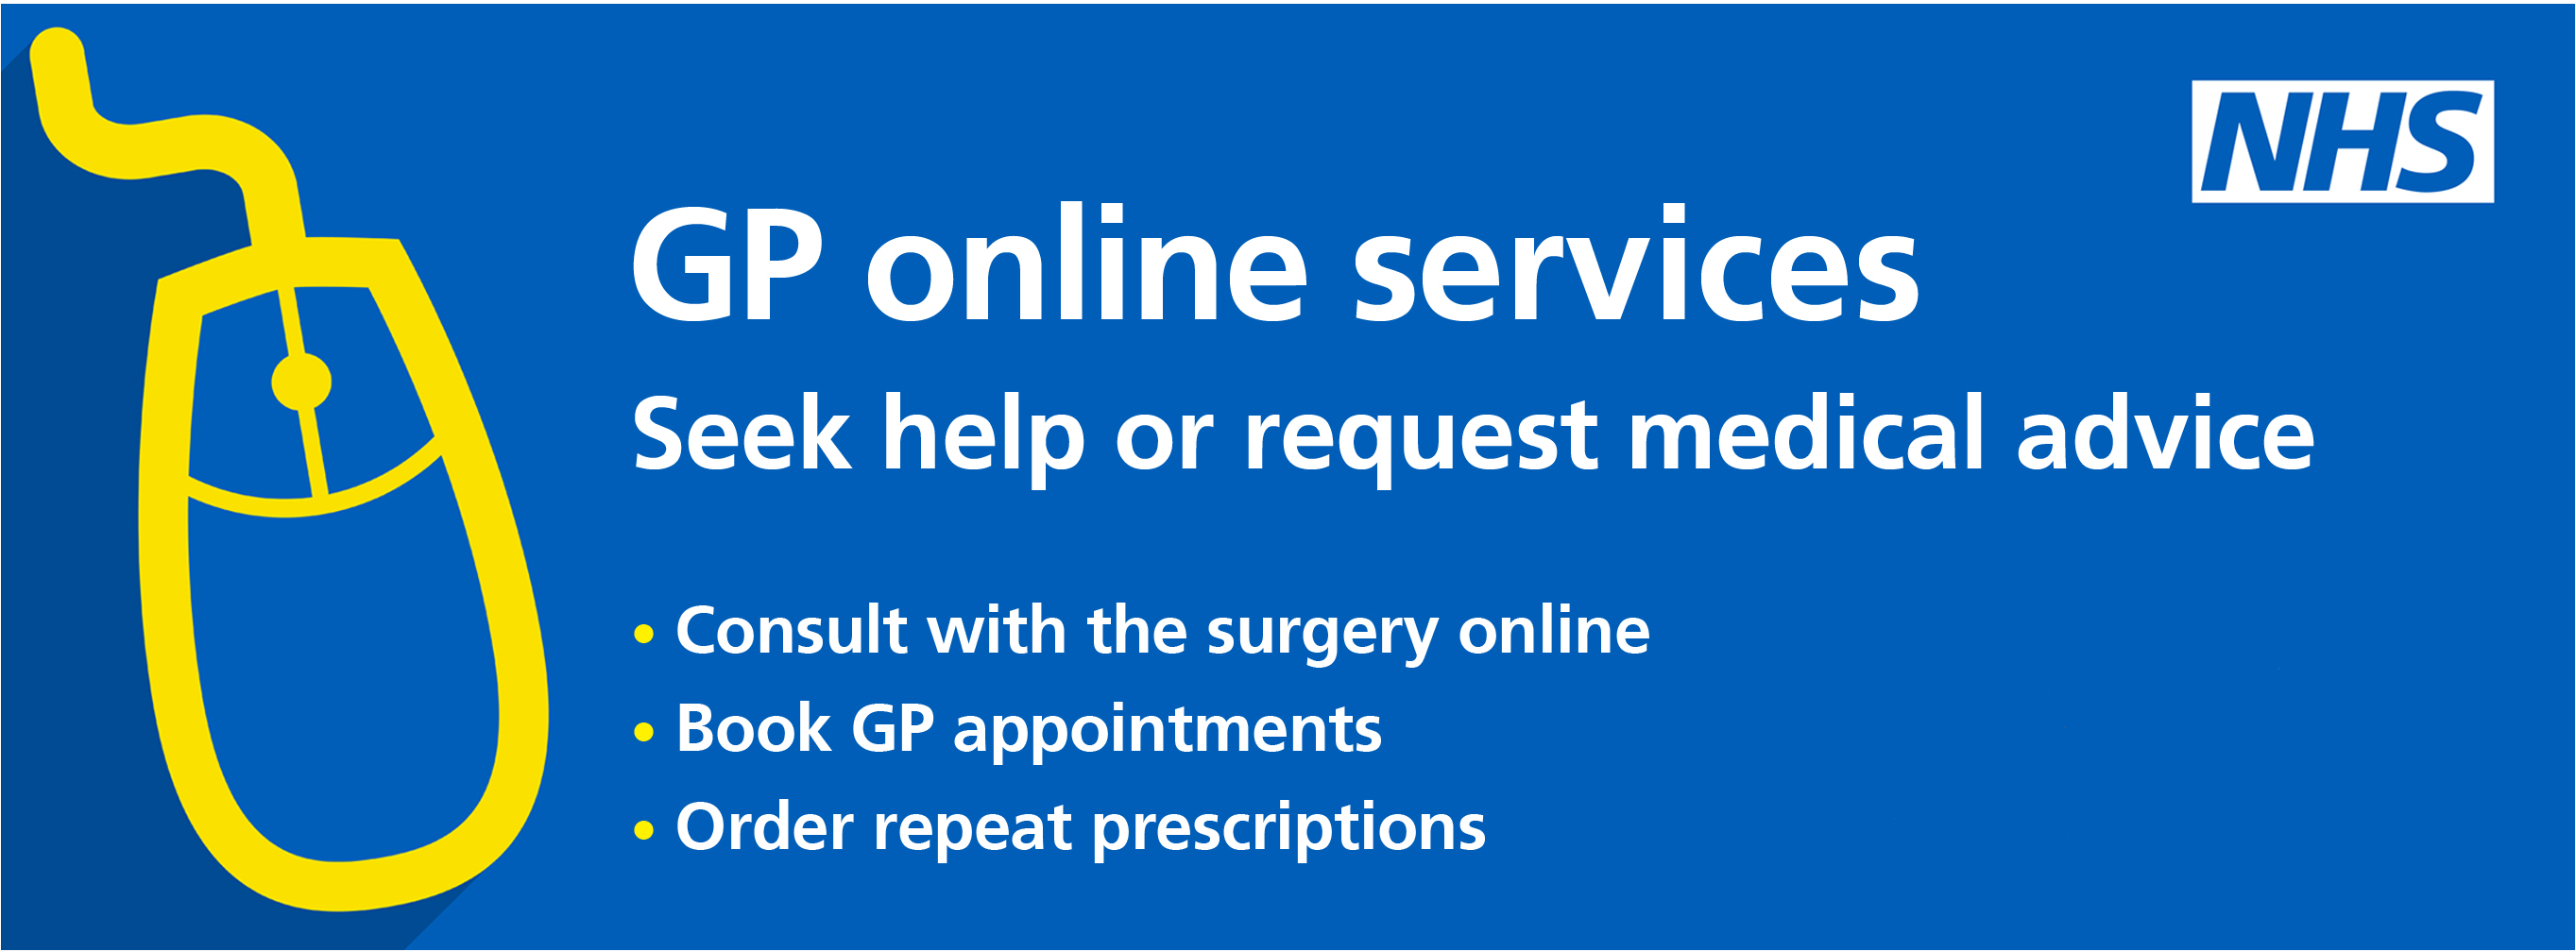 GP online services. Seek help or request medical advice. Consult with the surgery online. Book GP appointments.  Order repeat prescriptions.